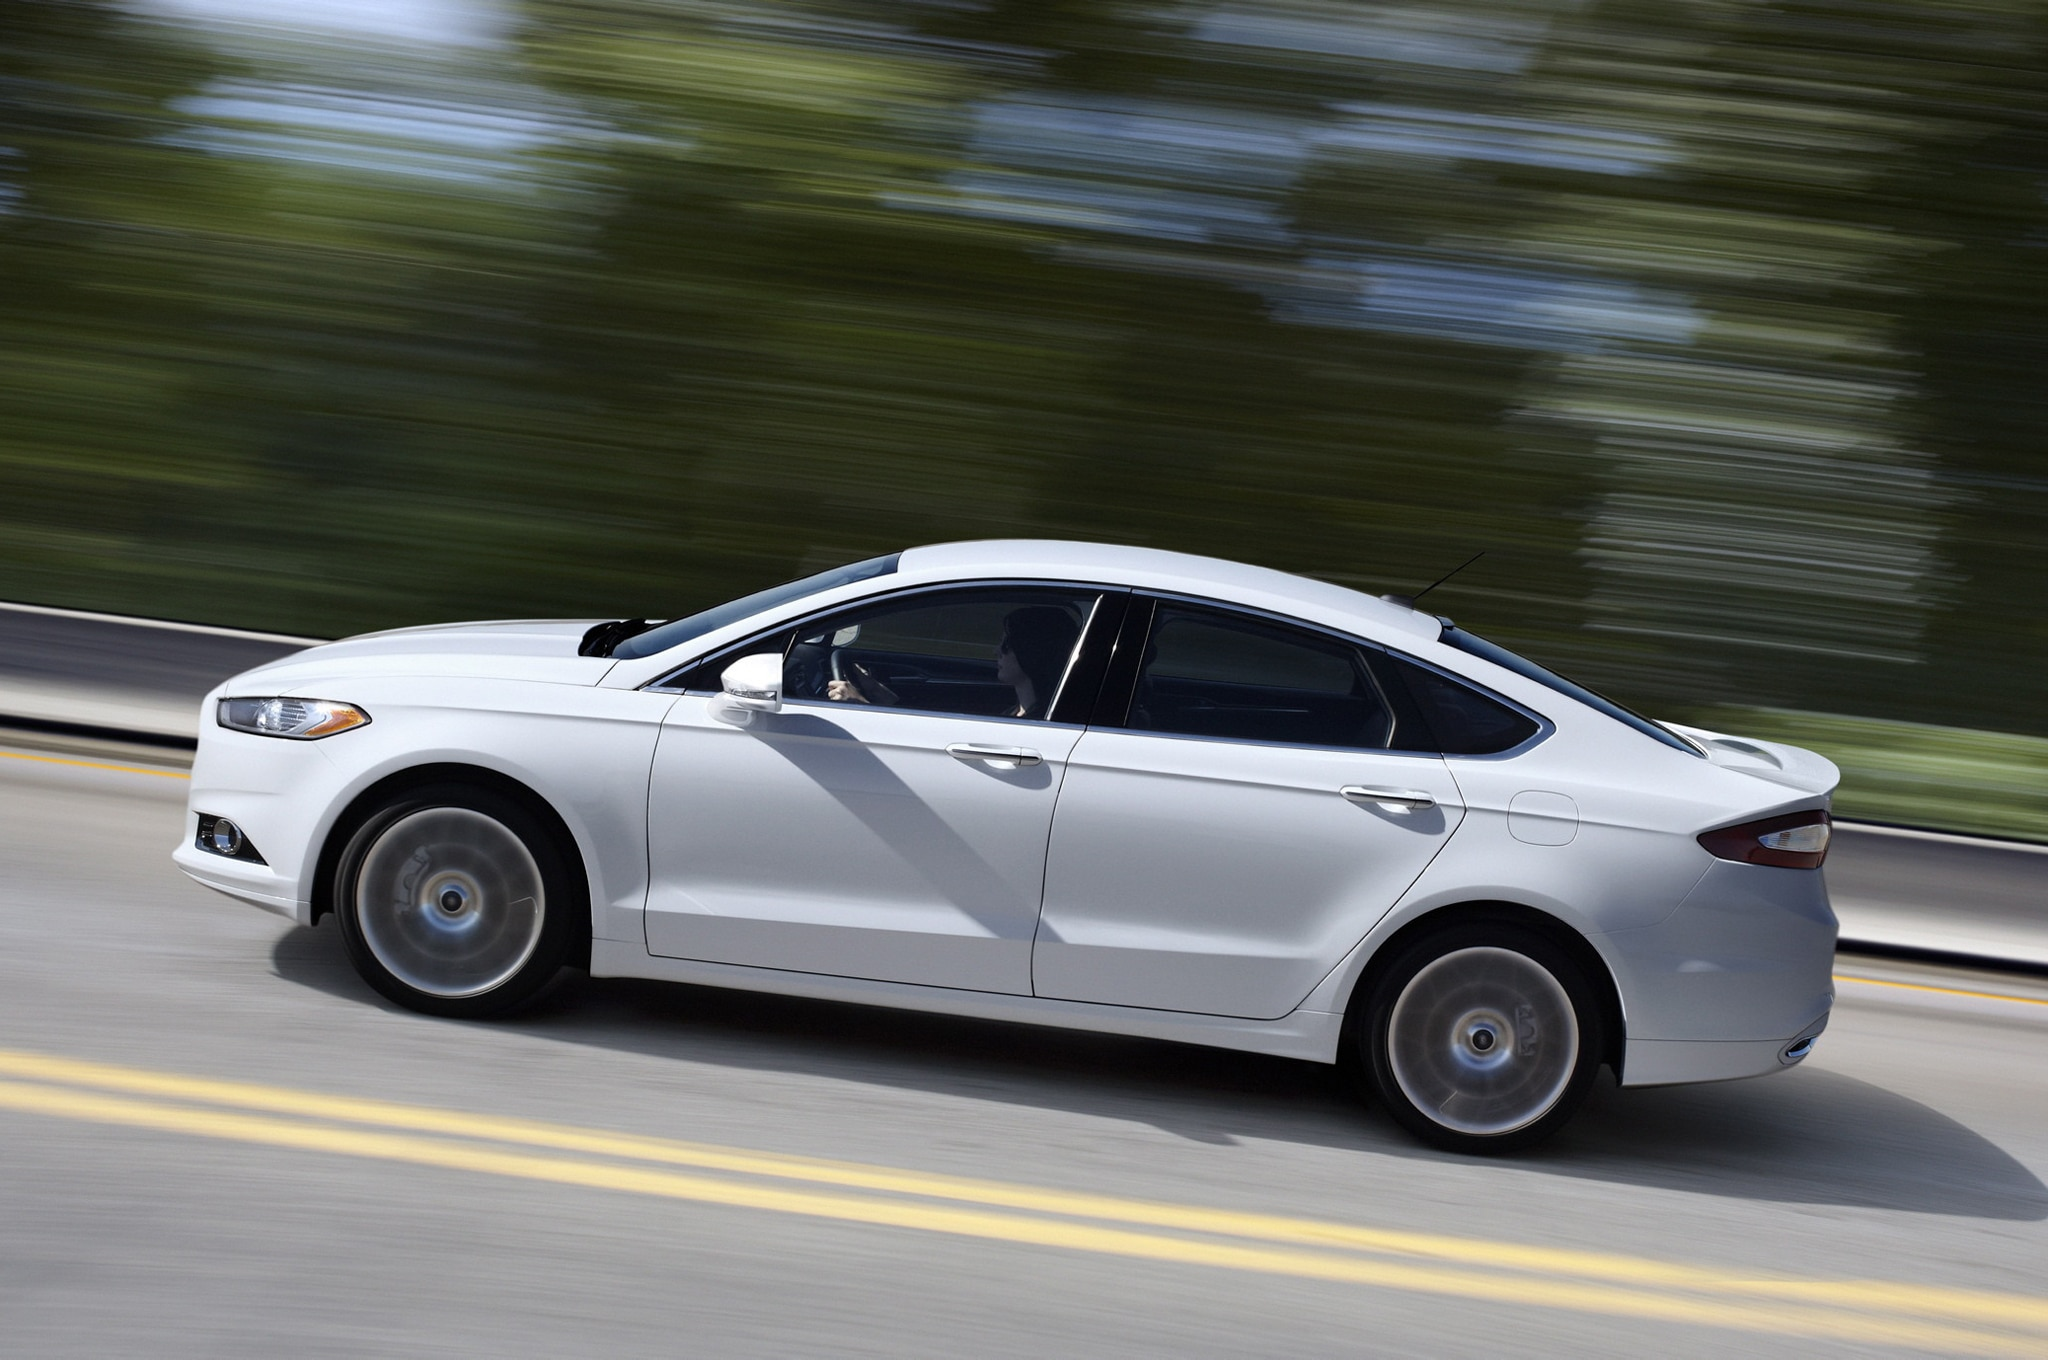 2013 Ford Fusion Side Profile View In Motion 021